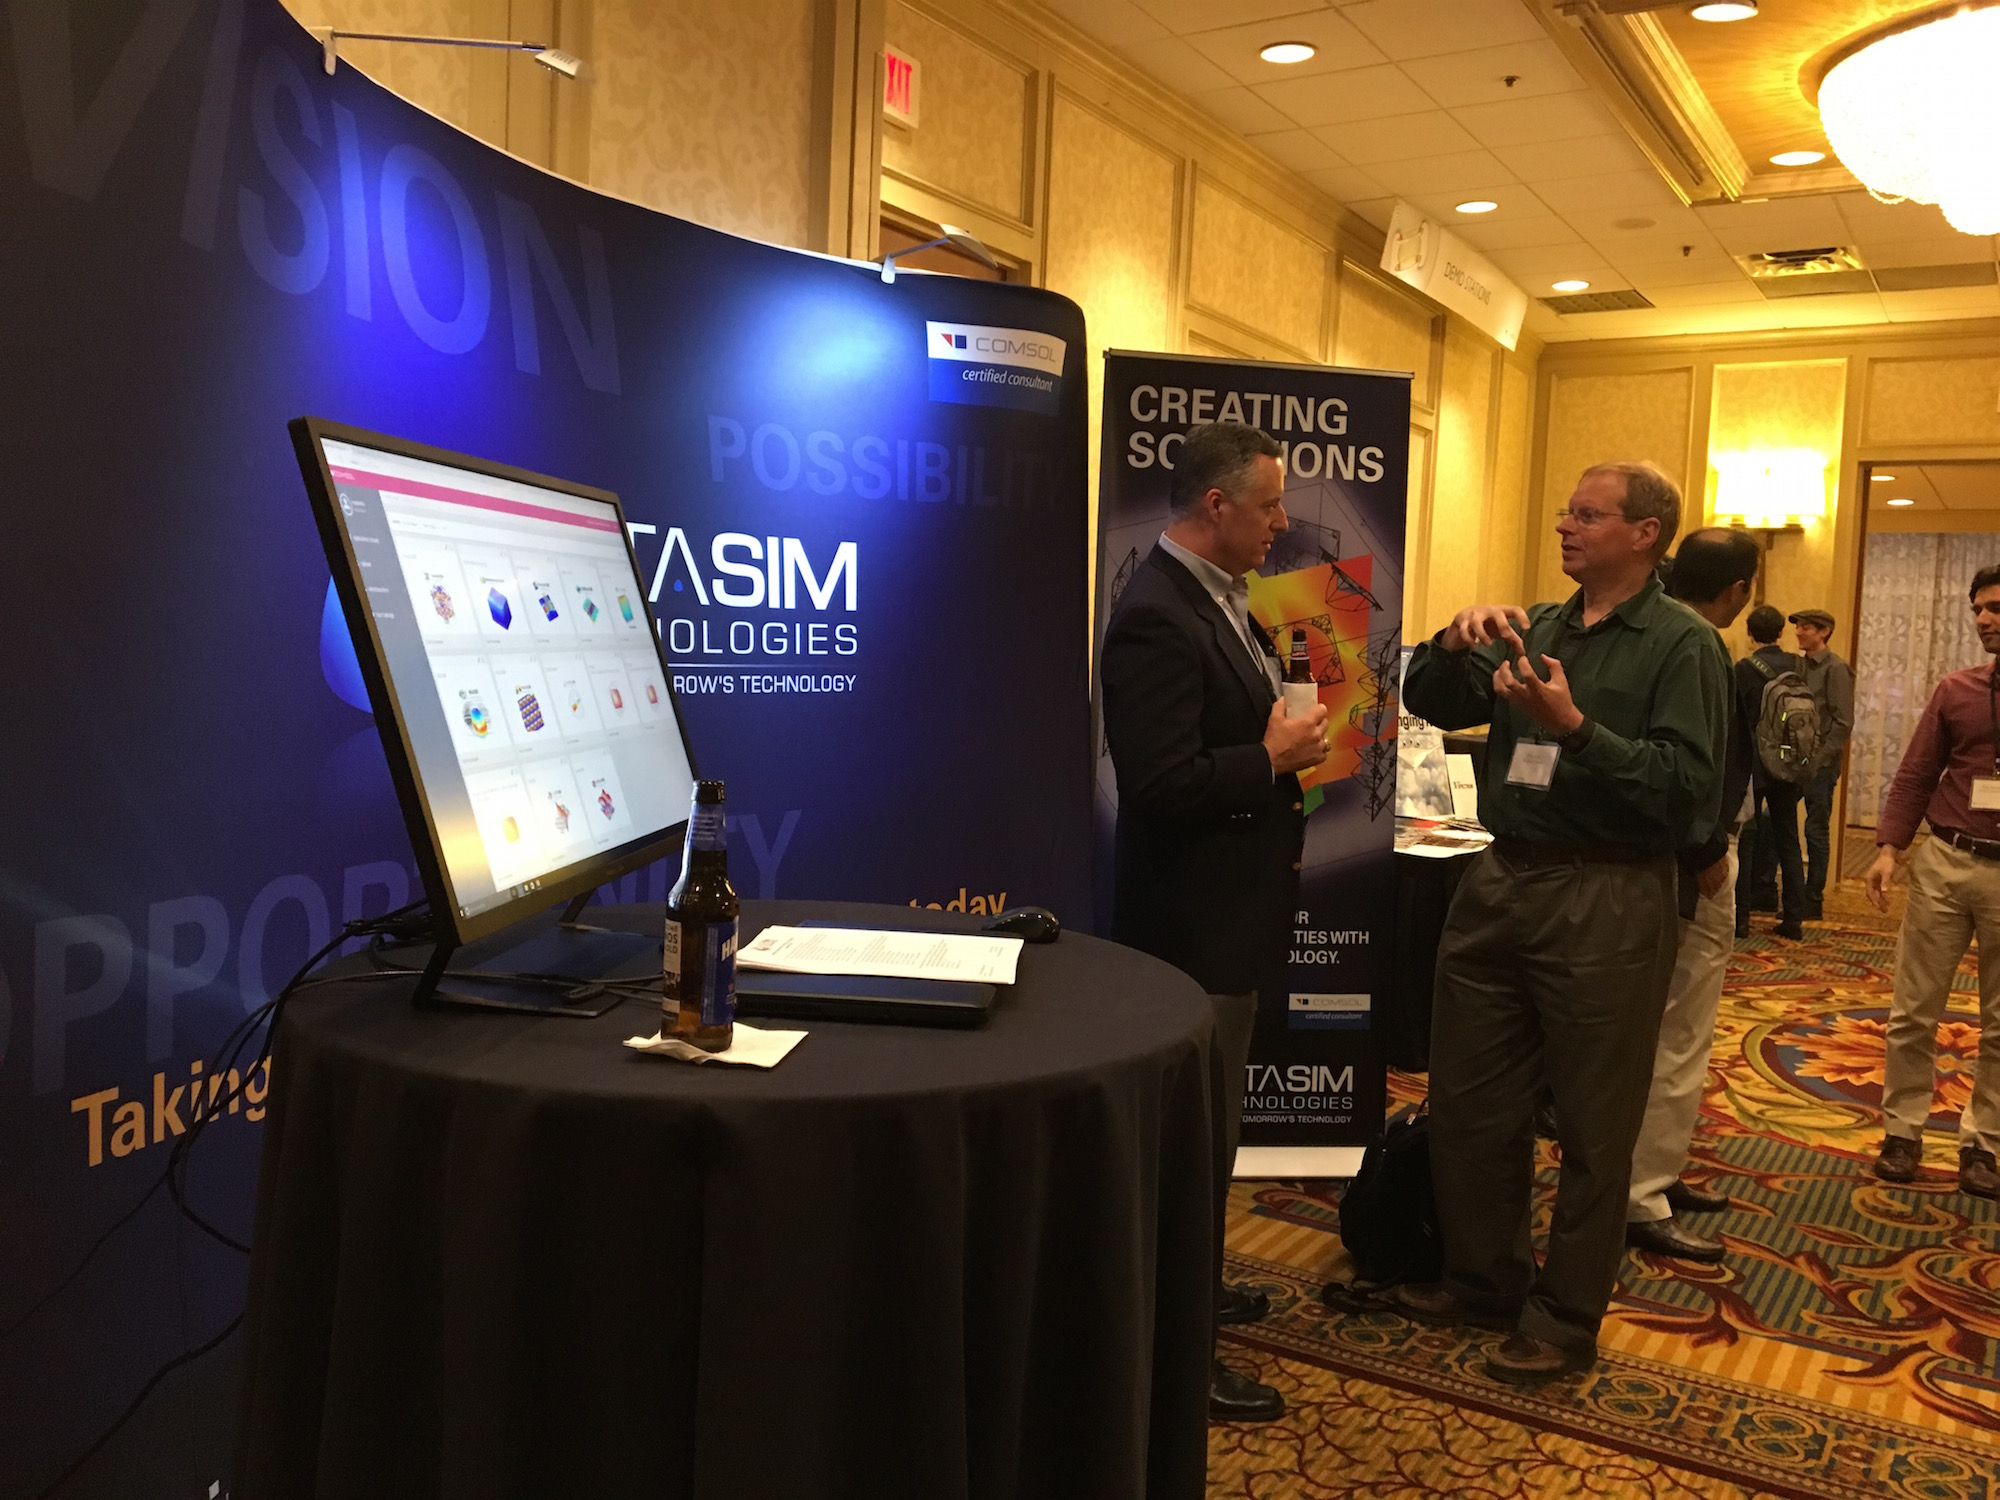 One of our exhibitors, AltaSim Technologies